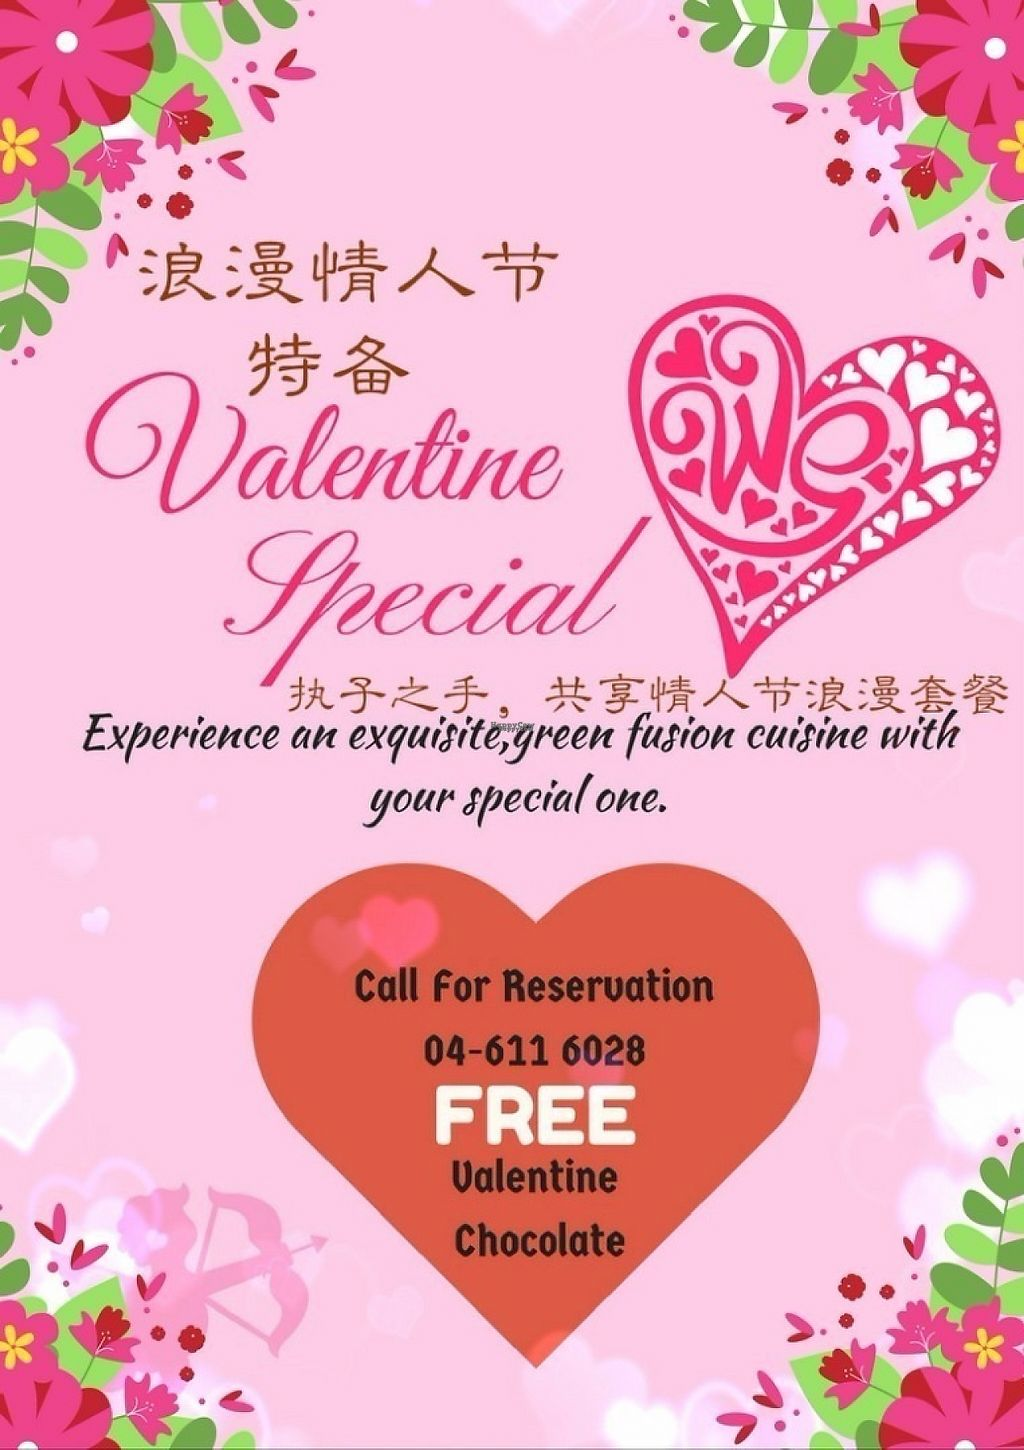 """Photo of Fresh Moment - maybe closed  by <a href=""""/members/profile/happyin"""">happyin</a> <br/>Experience an green fusion cuisine with special one~Free dark chocolate <br/> February 10, 2017  - <a href='/contact/abuse/image/69112/224971'>Report</a>"""